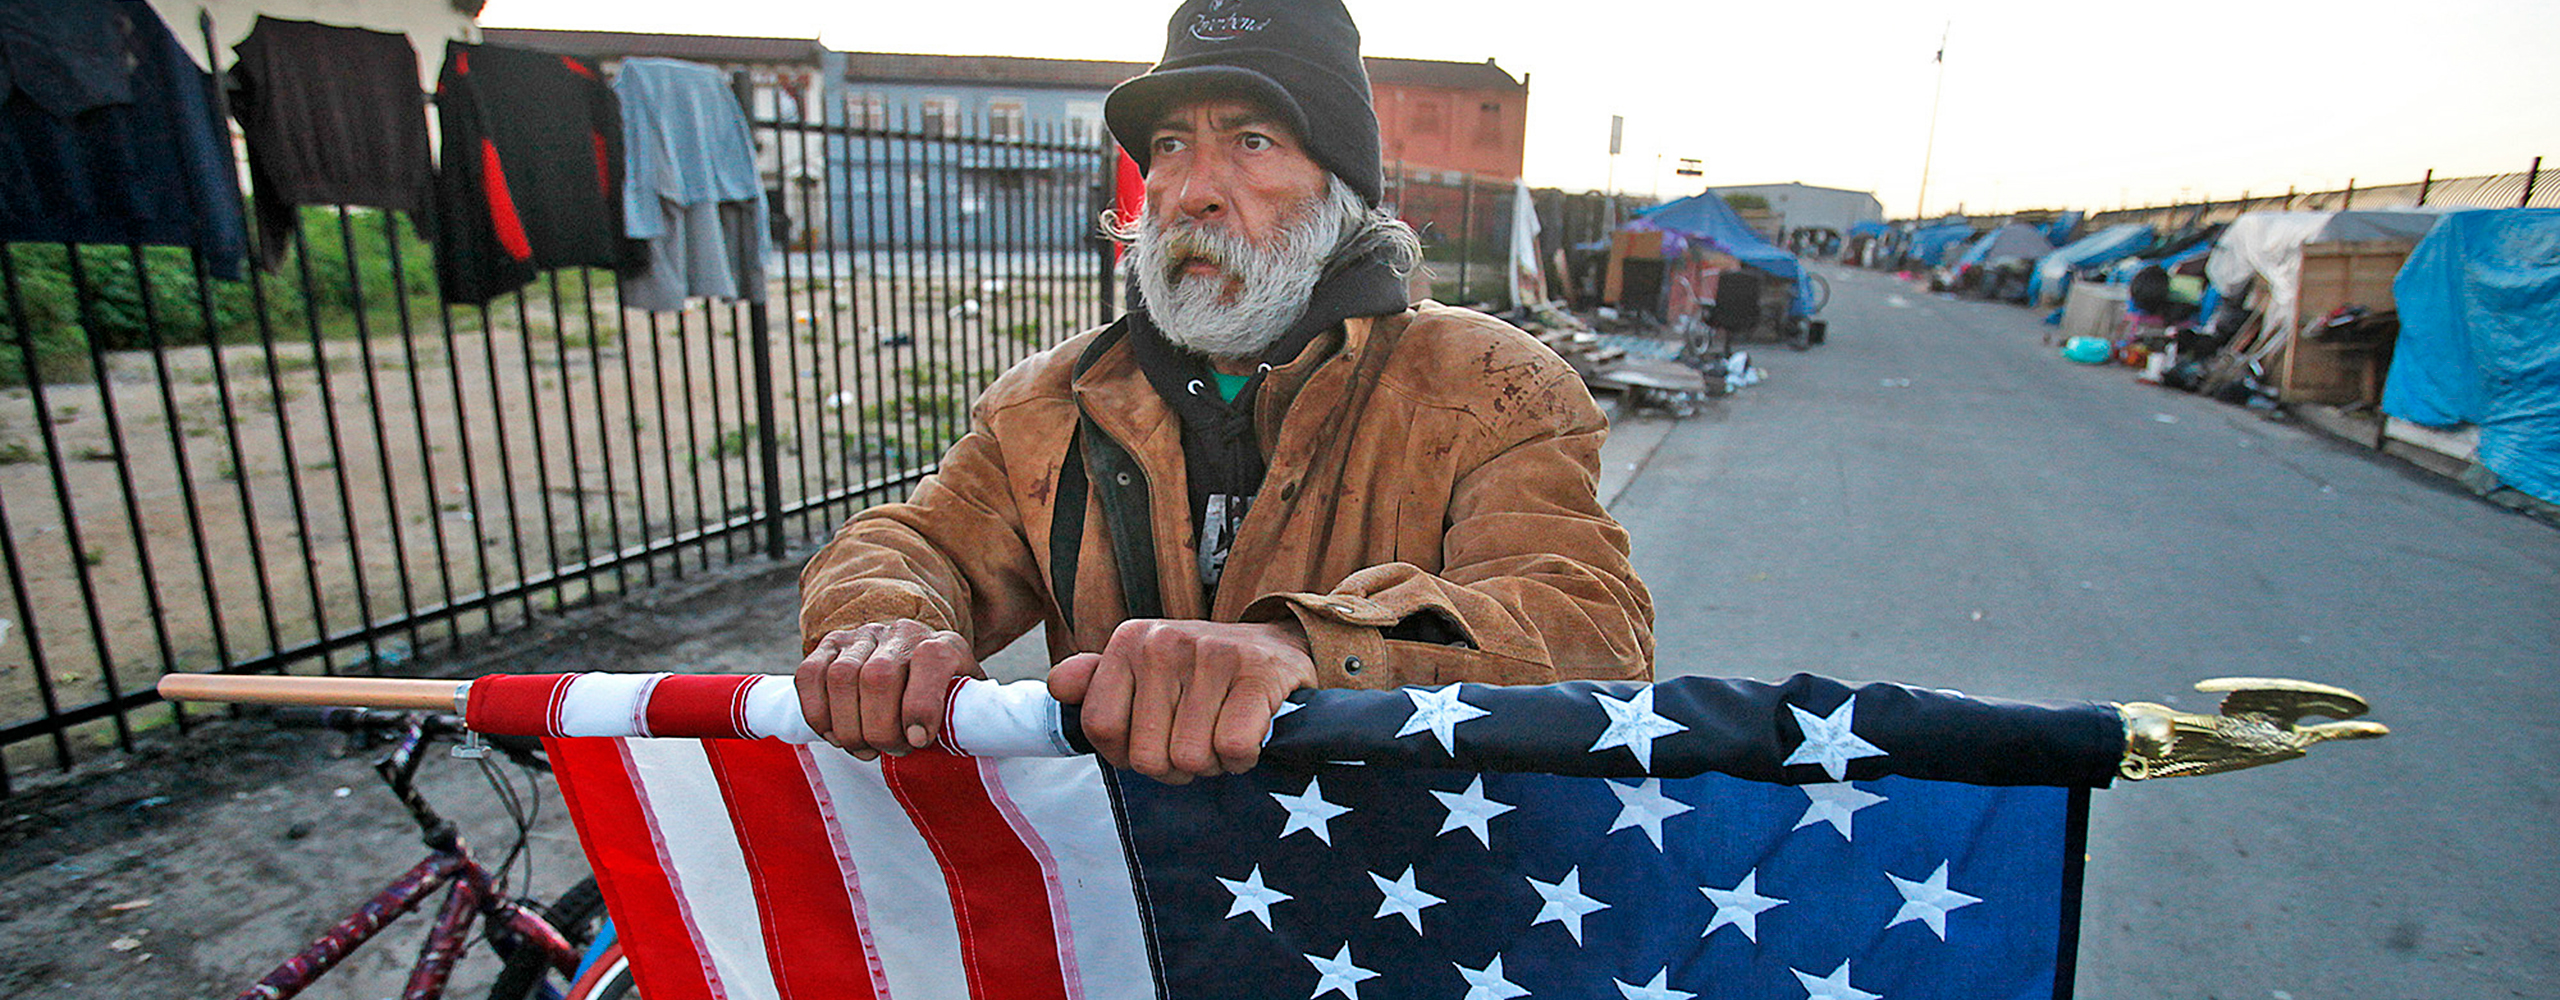 A homeless person holds a slightly rolled American flag. They appear to be standing in Skid Row Los Angeles, a street with many homeless tents lining the street. There is a fence with clothes hanging on it to the left of the homeless man, as well as two bikes to his direct left.